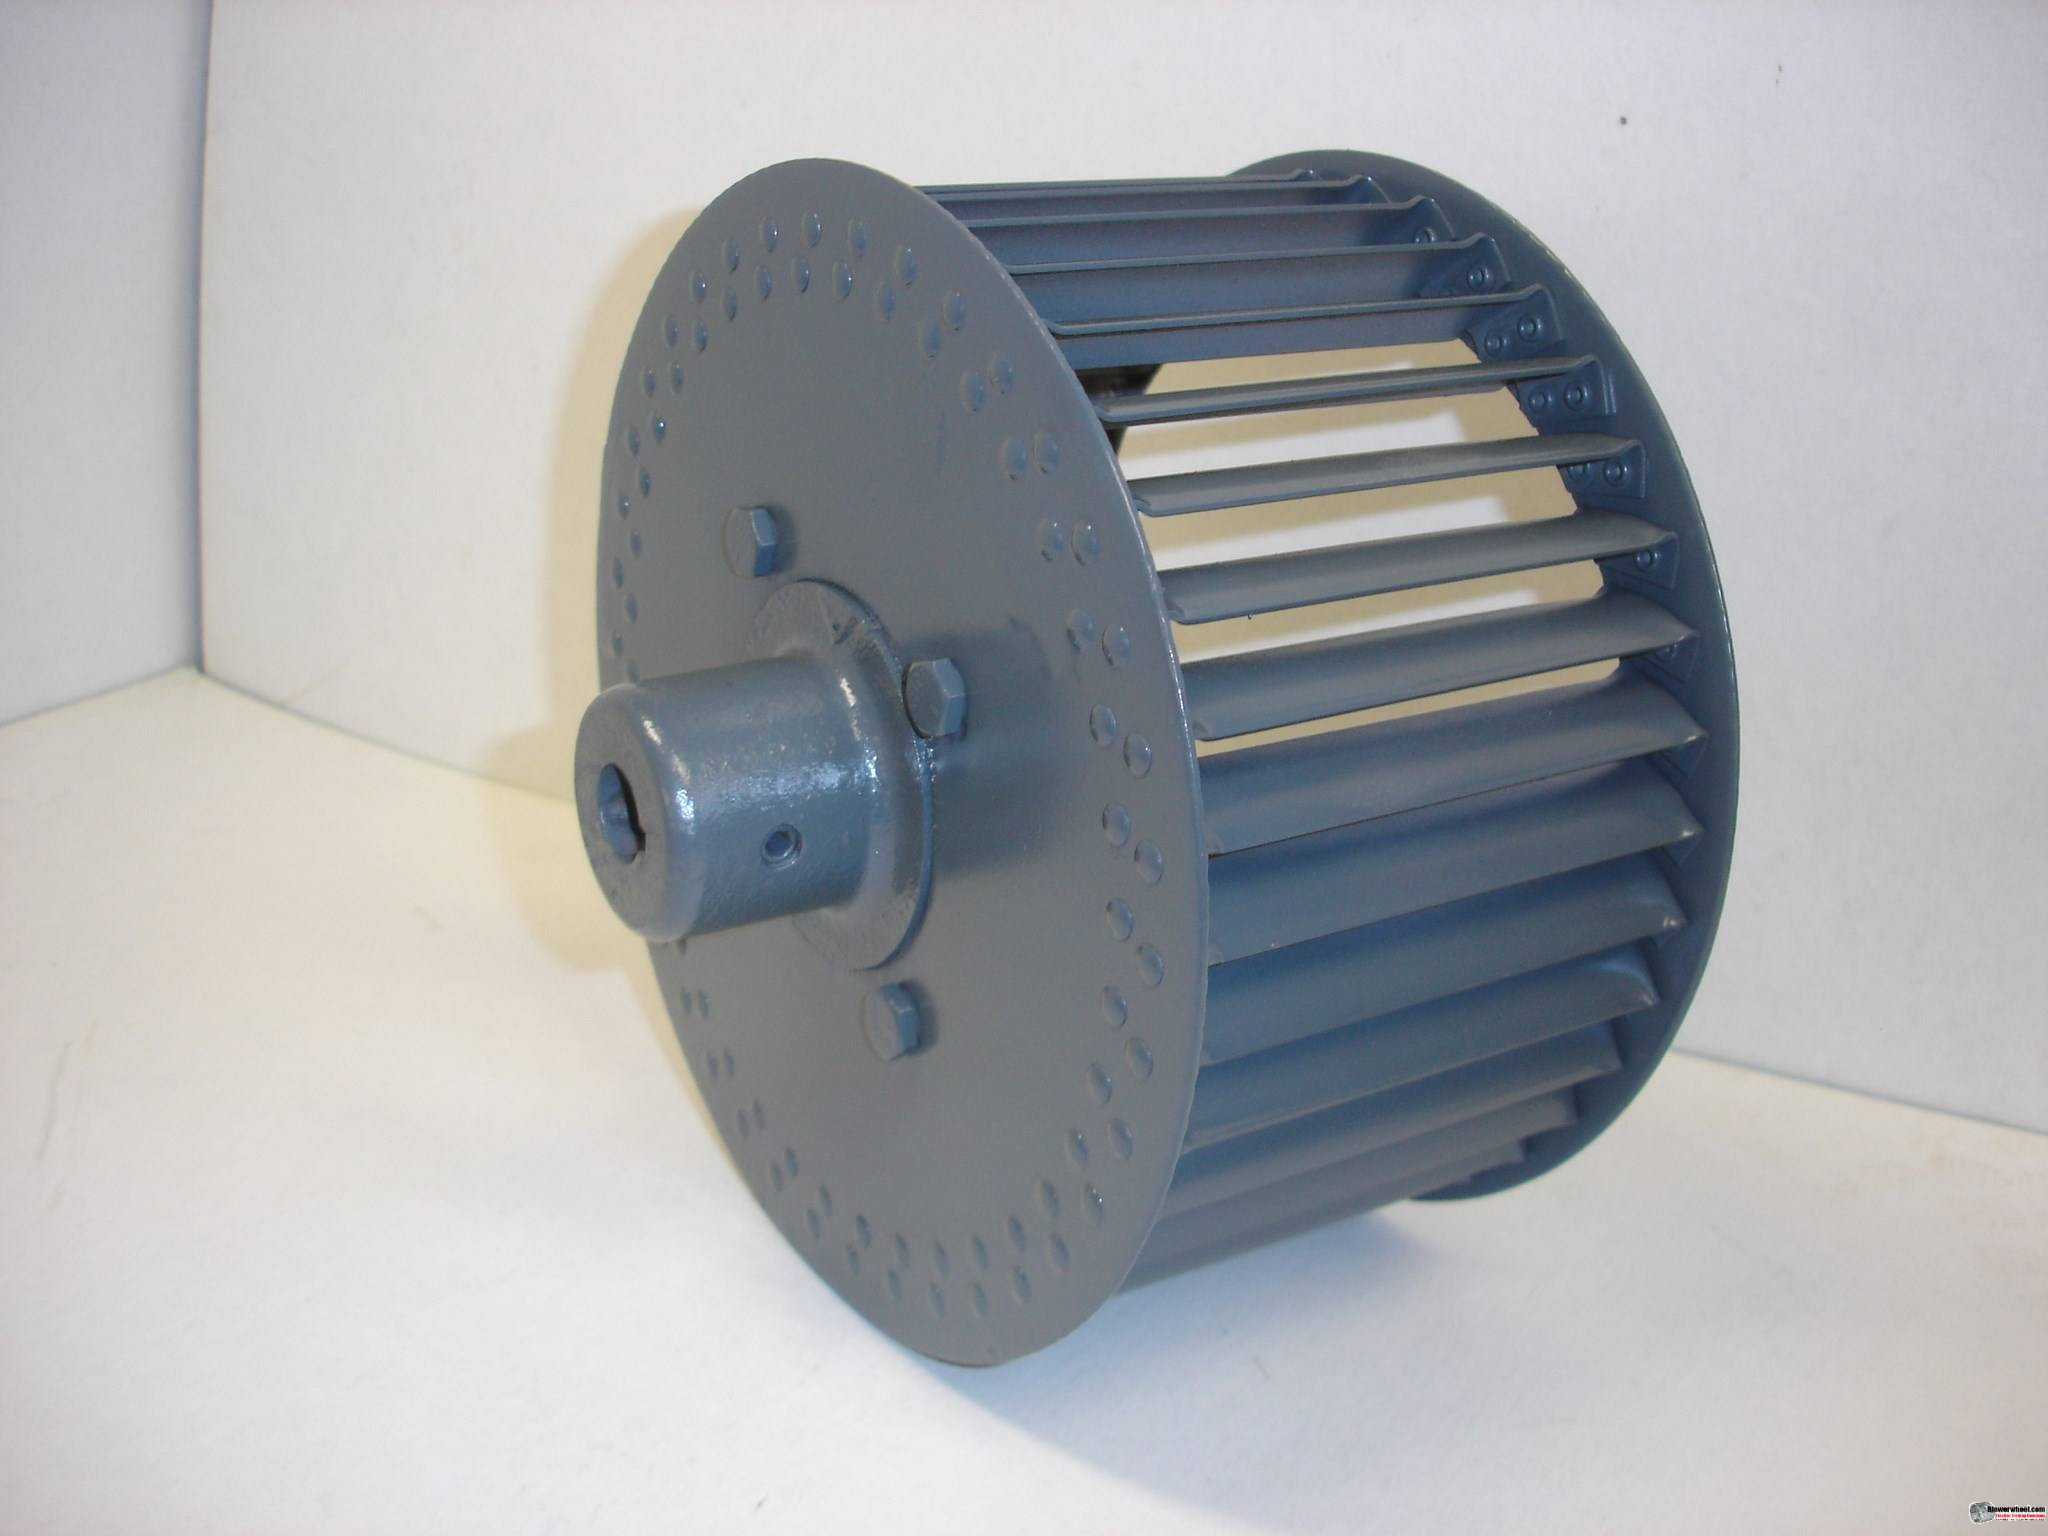 "Single Inlet Steel Blower Wheel 7-1/2"" Diameter 5-1/8"" Width 1/2"" Bore Clockwise rotation with an Outside Hub"